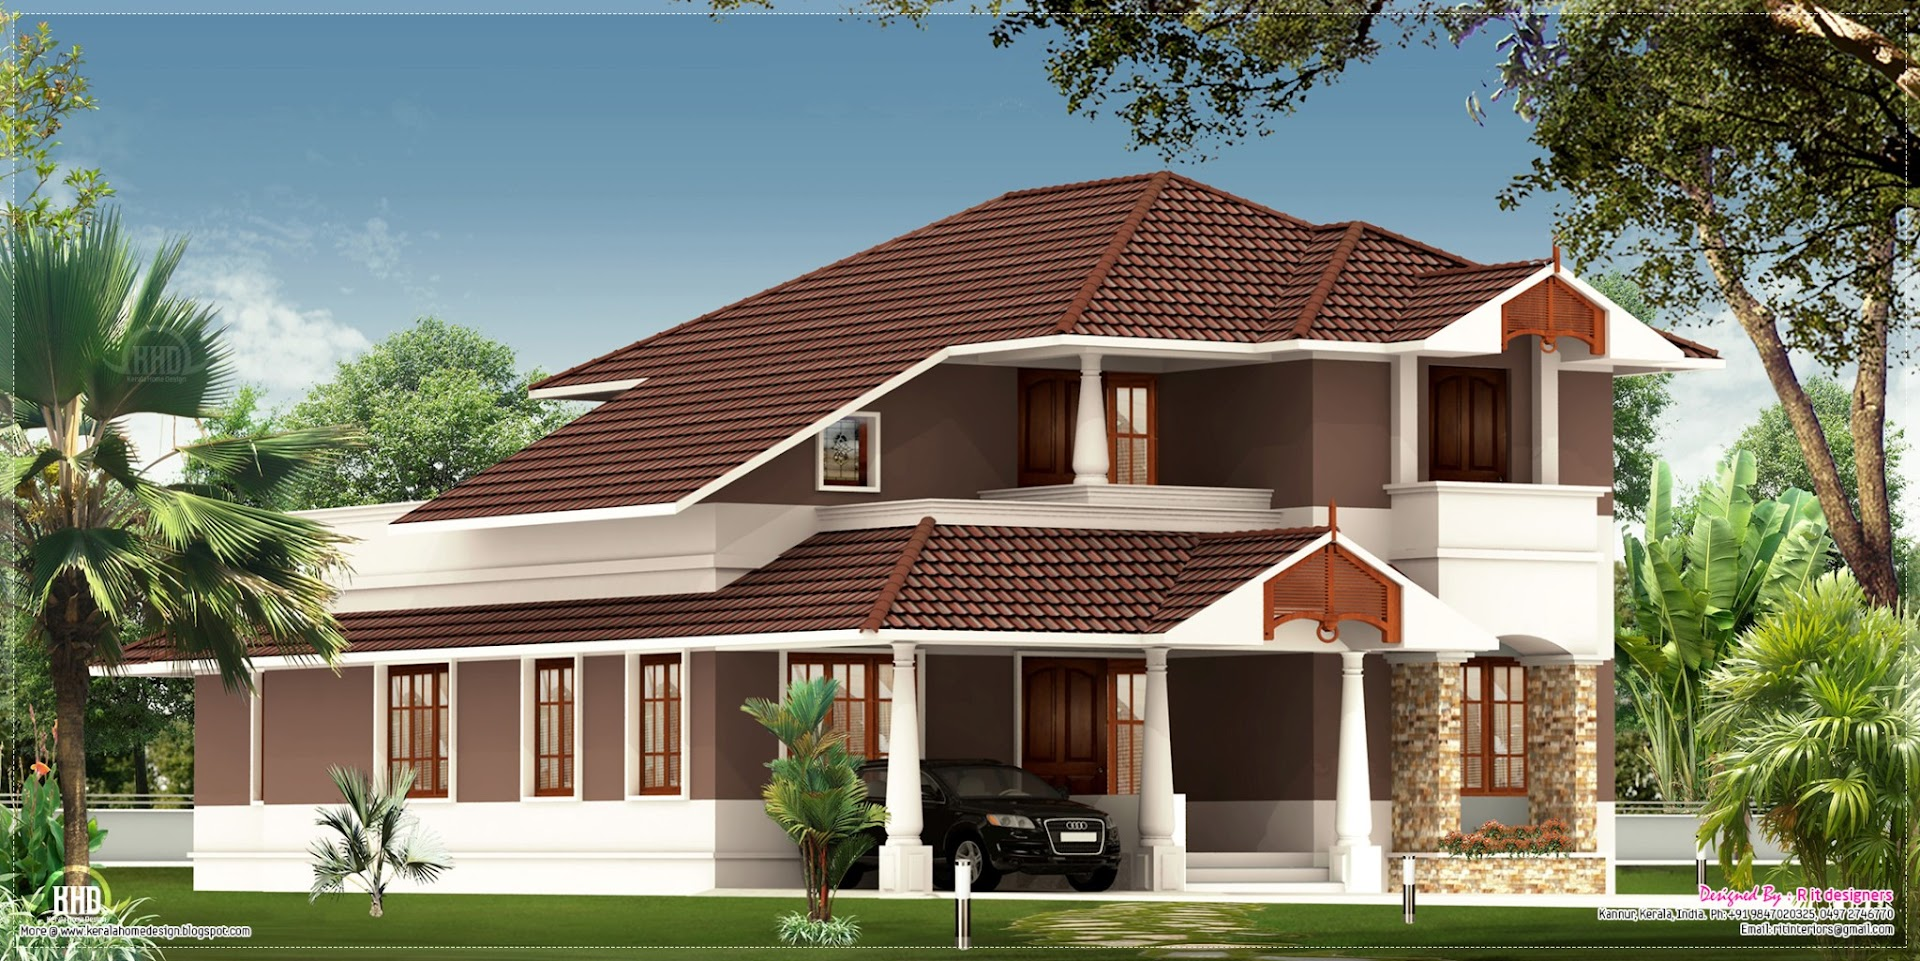 2100 house exterior design kerala home design